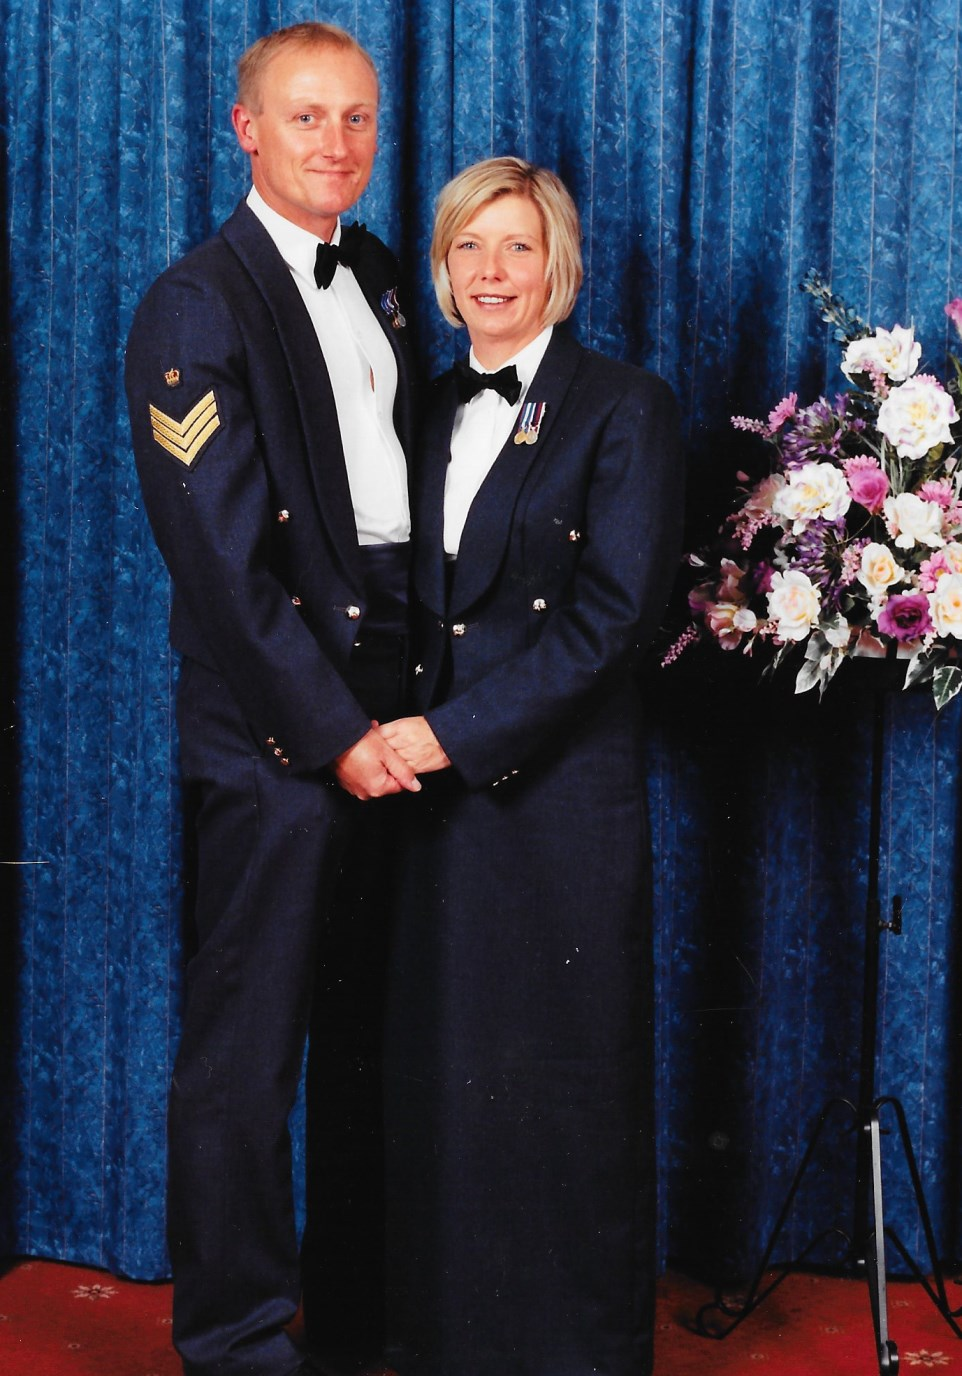 Airmen's Command Squadron together 2005